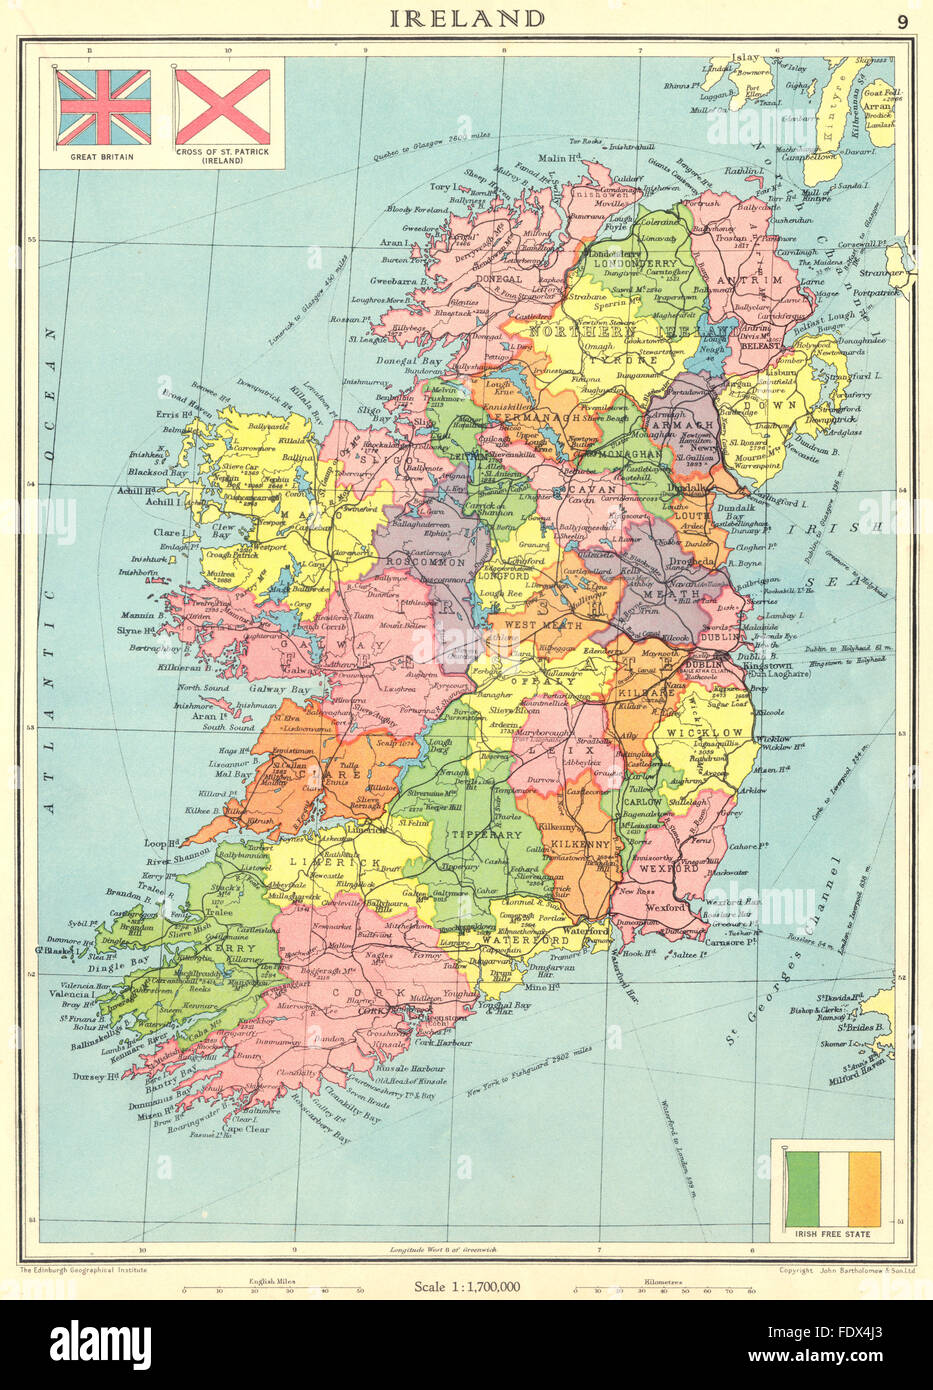 Map Of Ireland And Counties.Ireland Irish Free State Ulster Northern Ireland Counties 1938